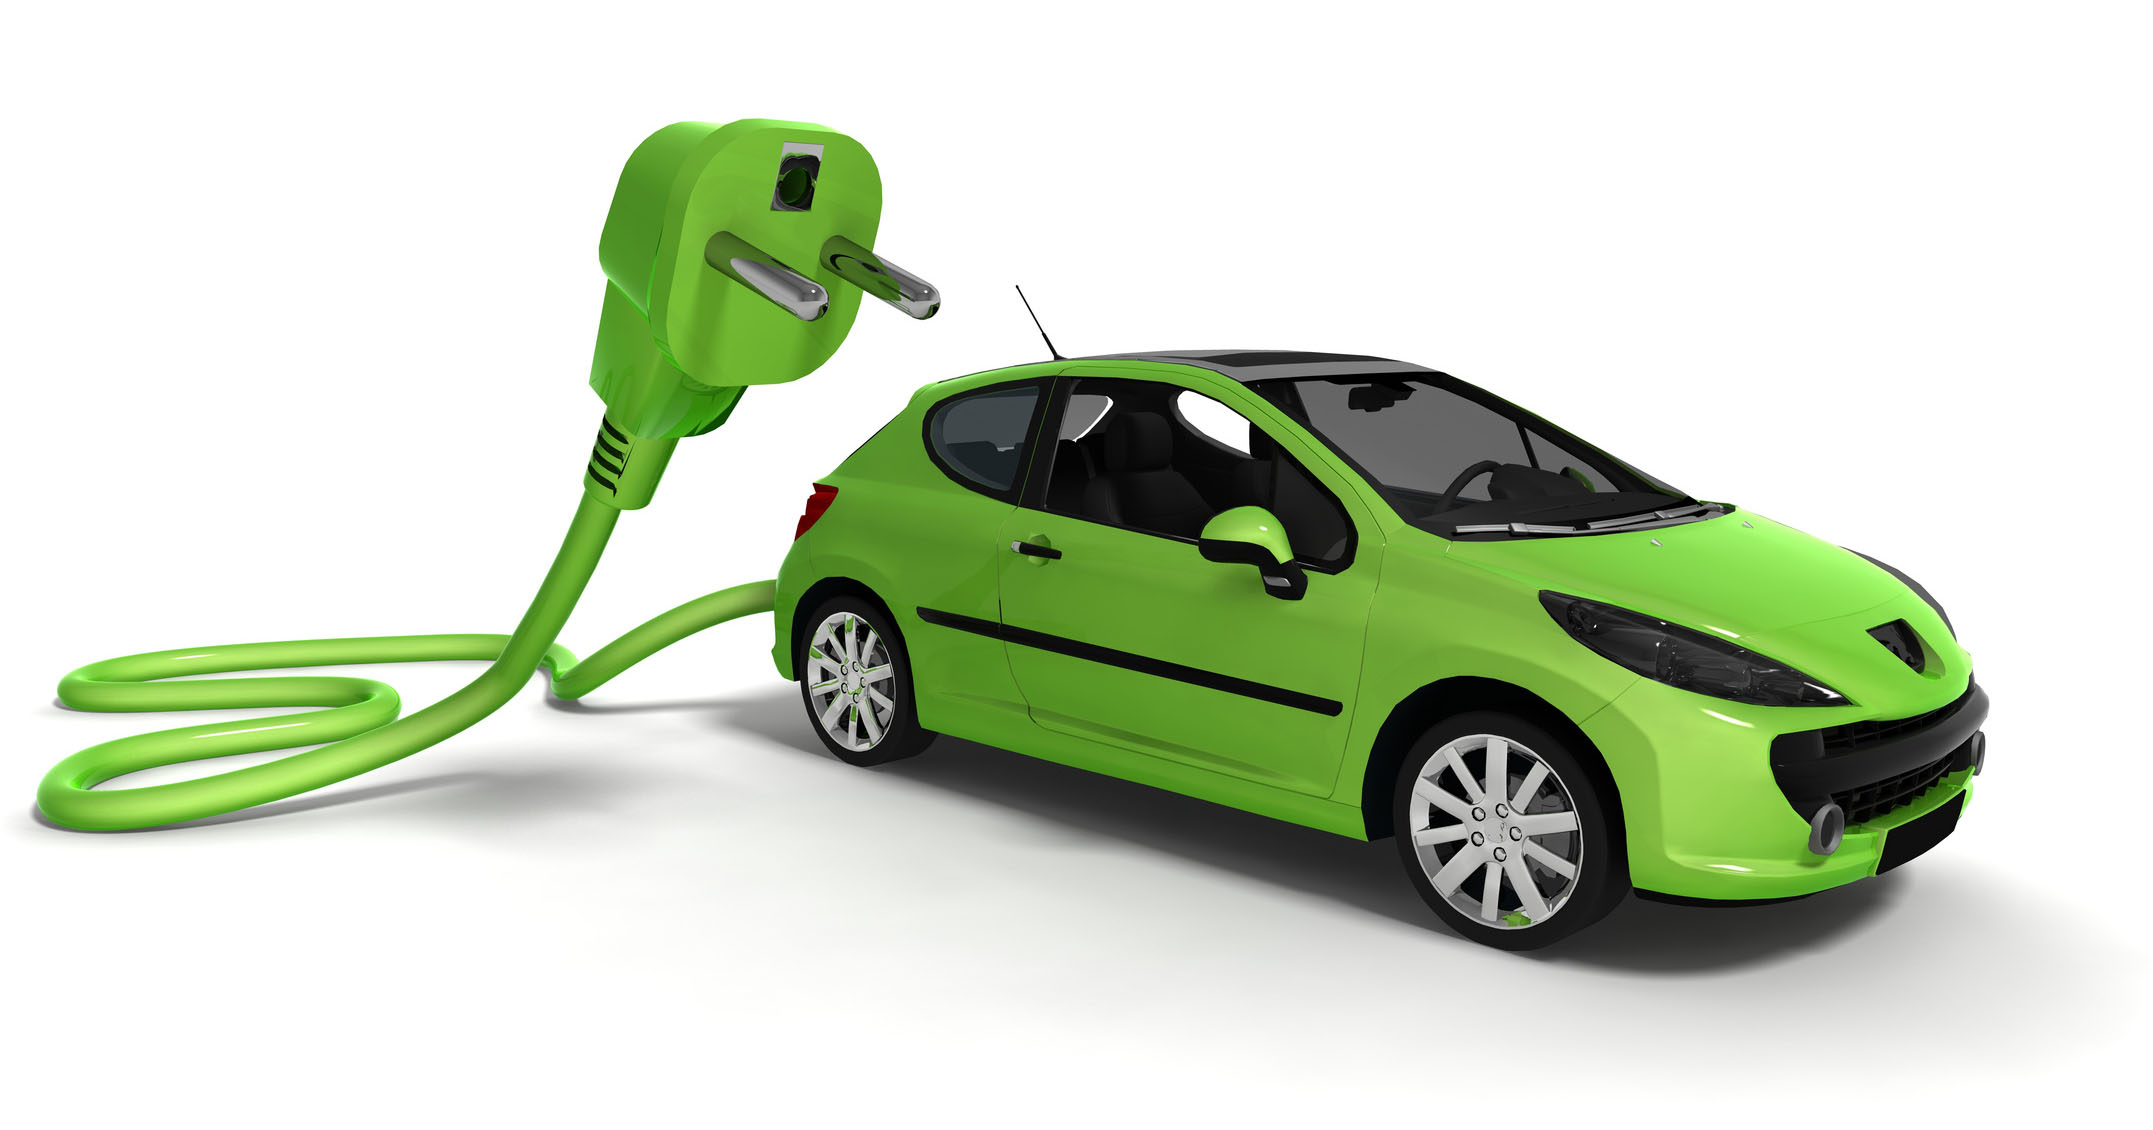 Electric car image